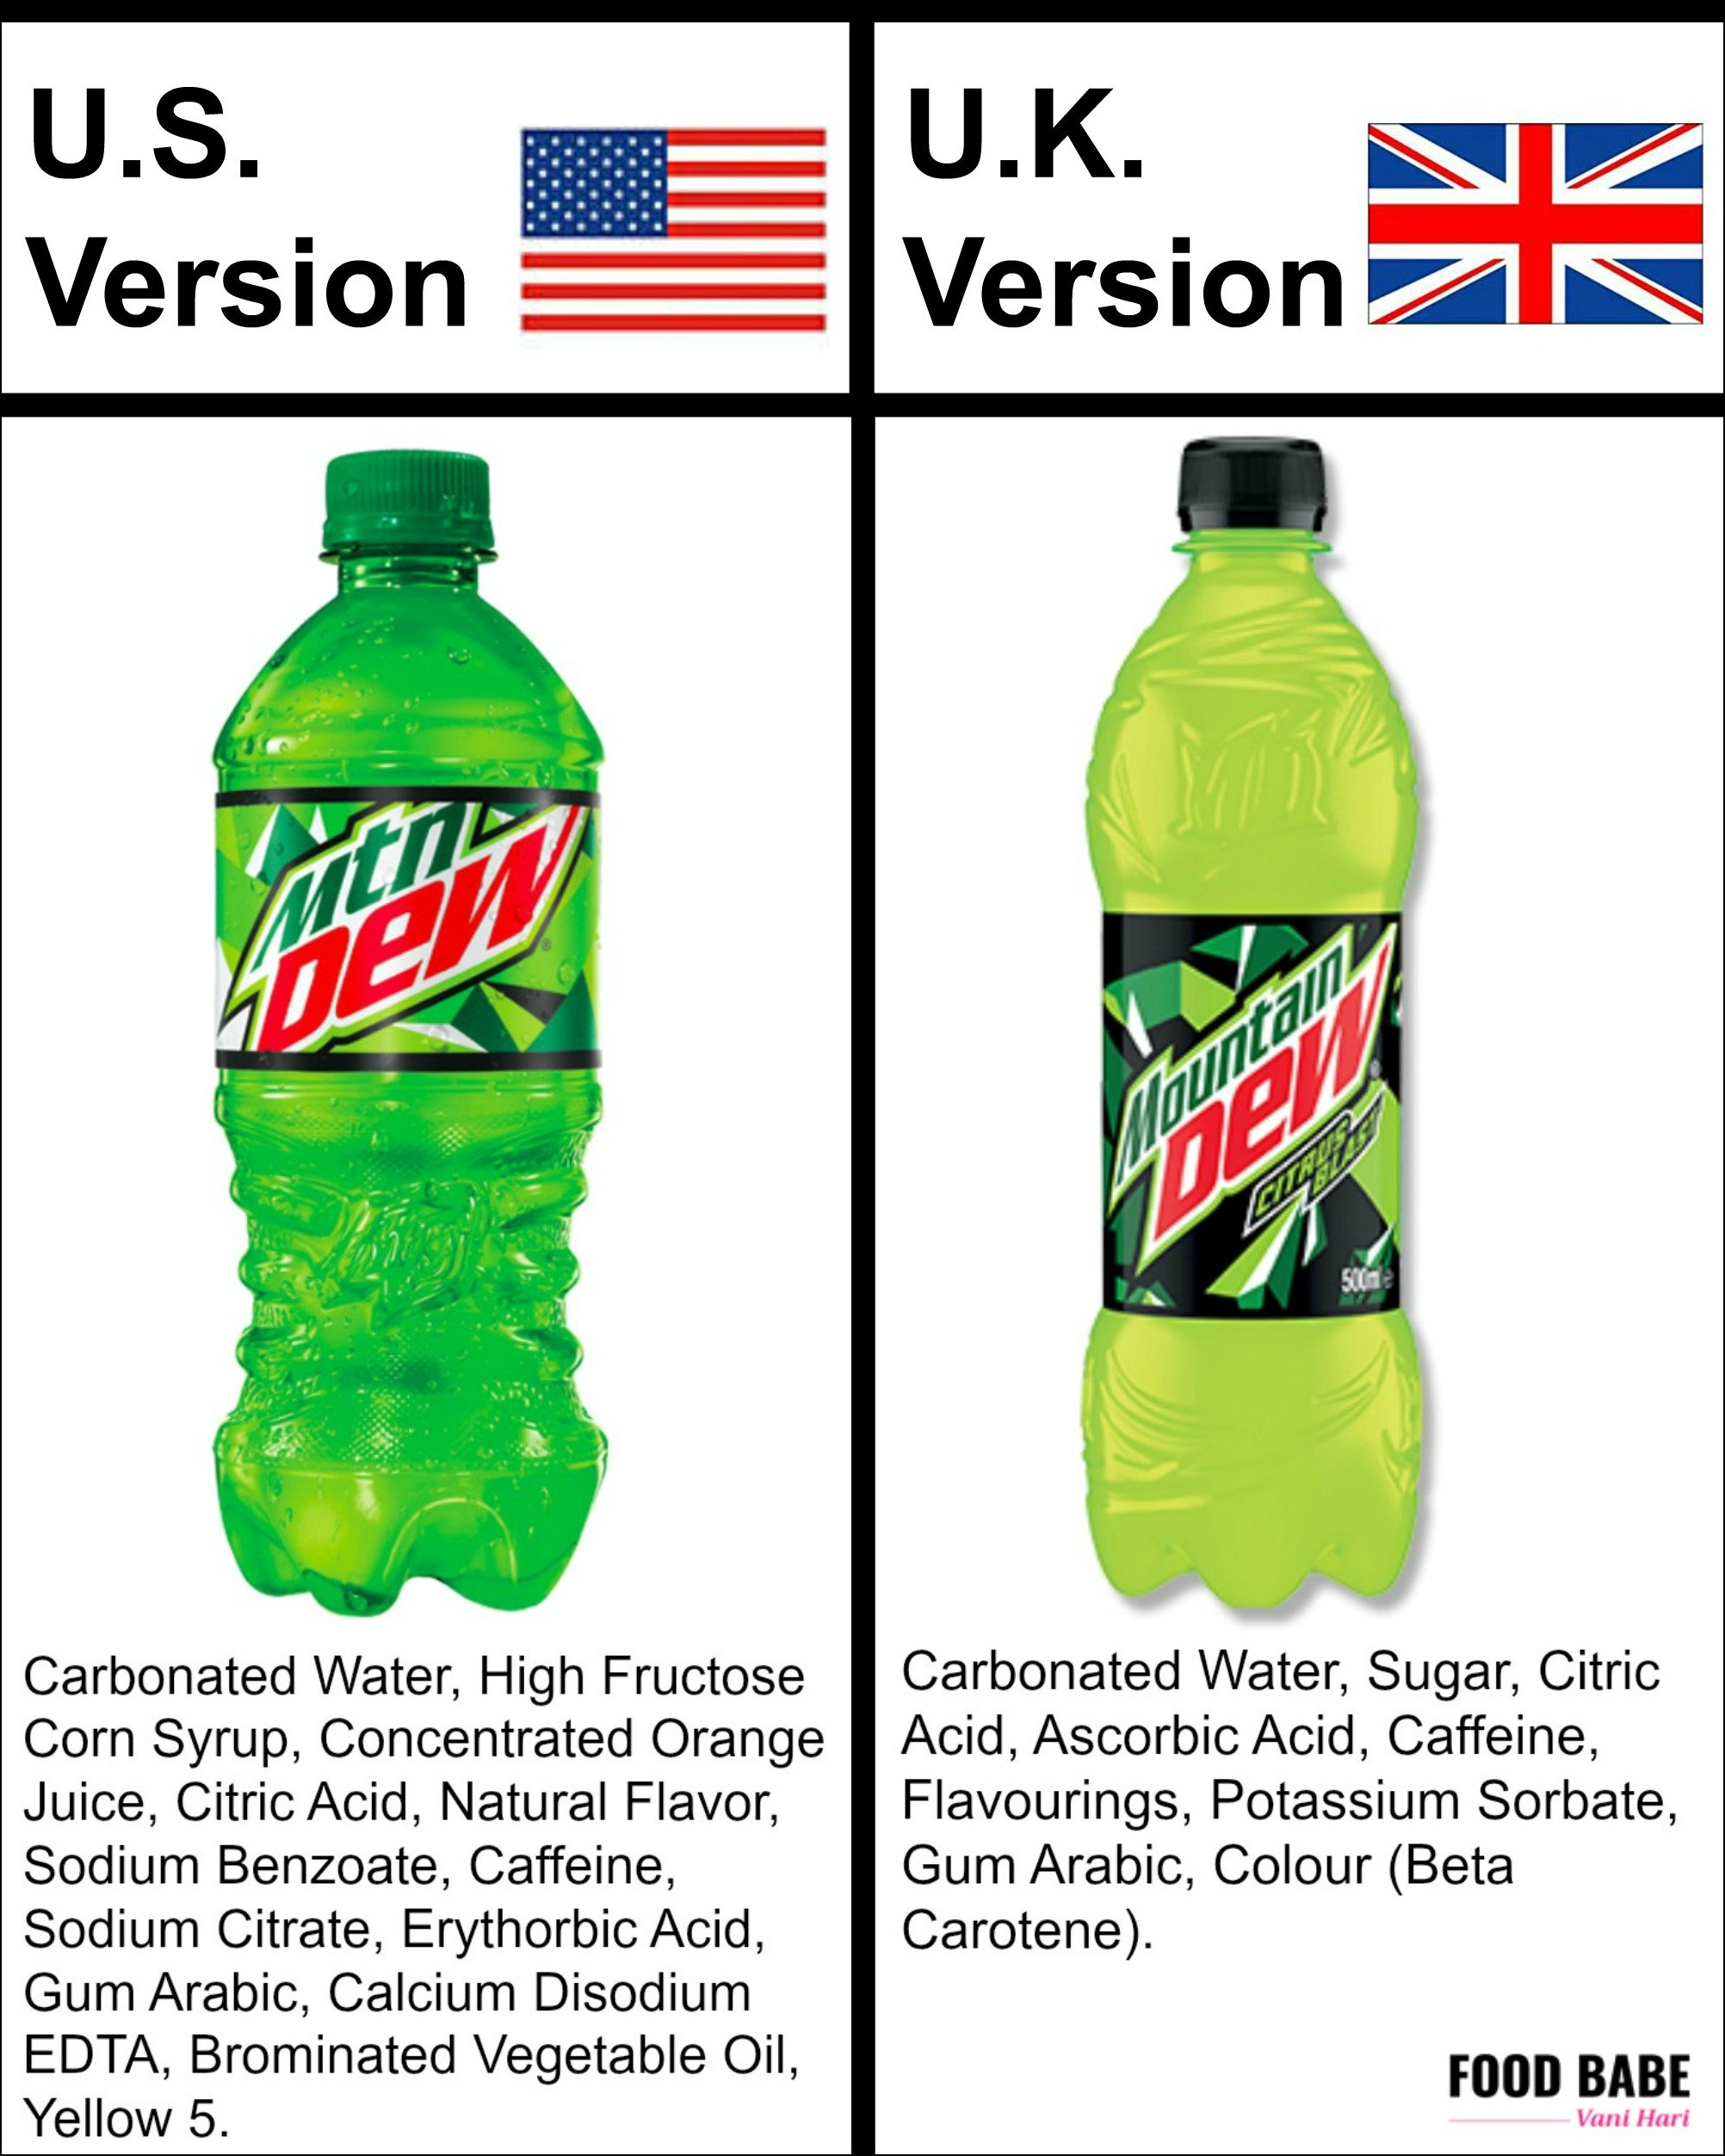 Food in America compared to the U K  (Why is it so different?)